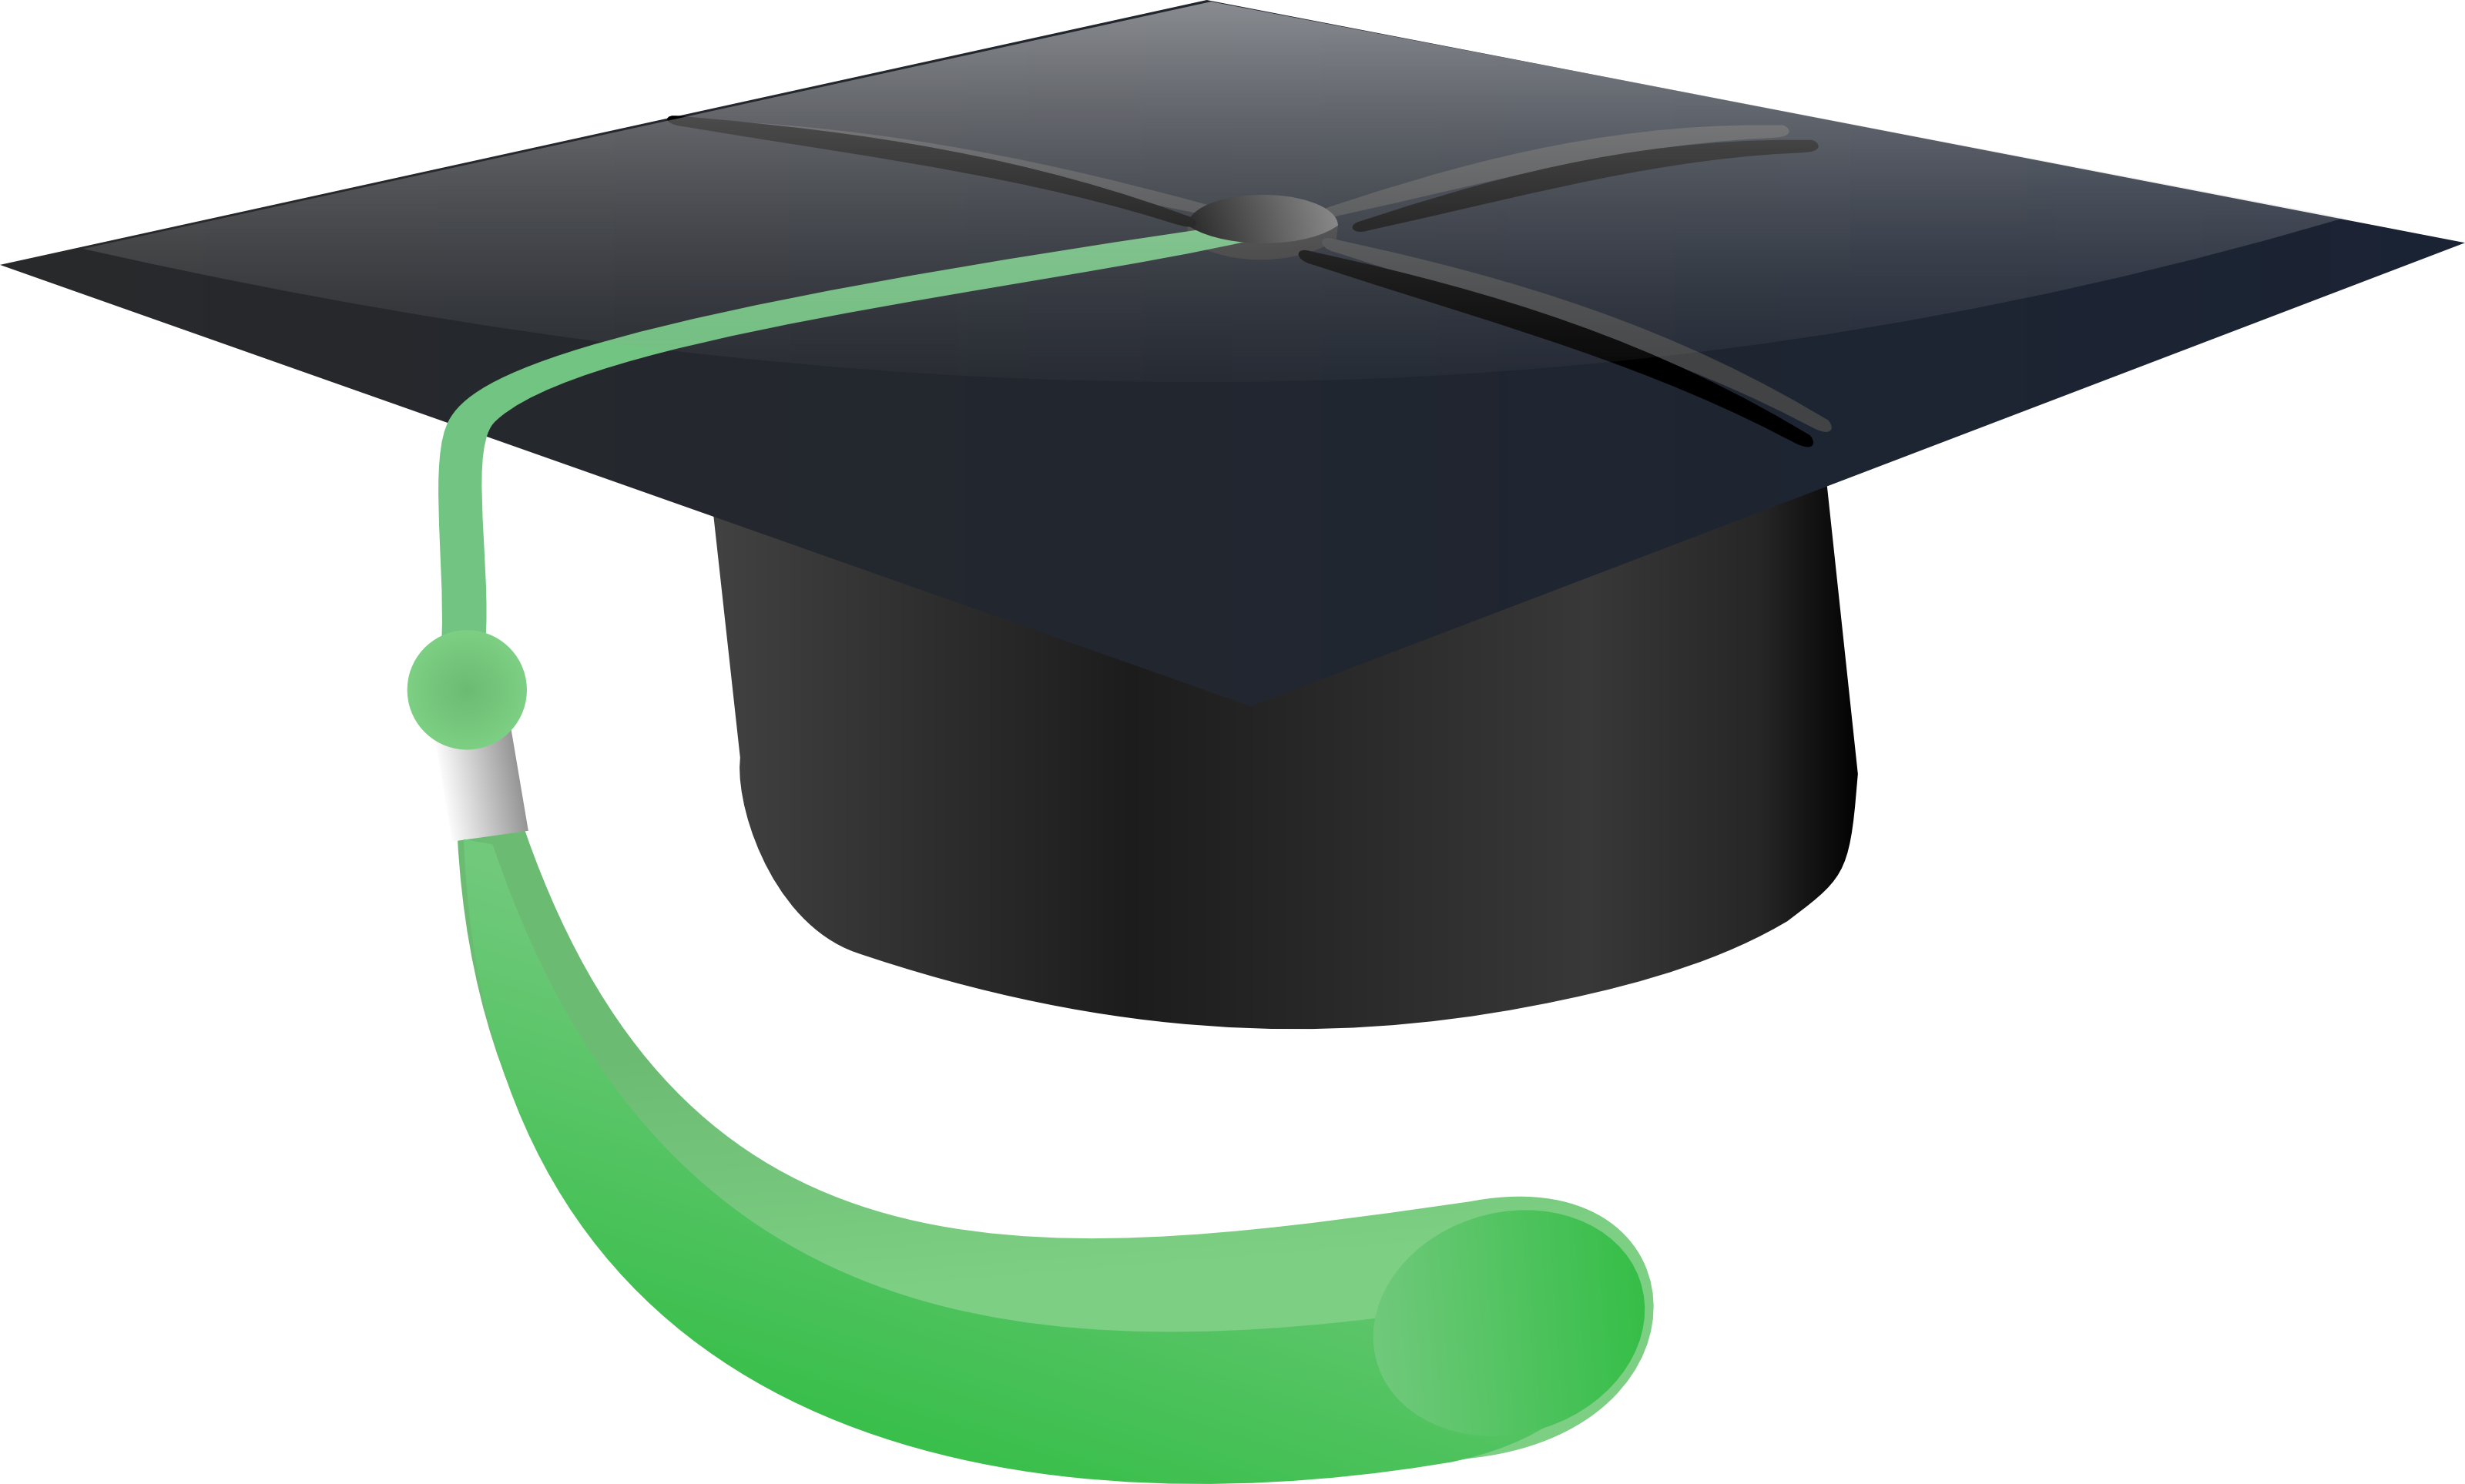 Free Graduation Cap And Gown Clipart-Free Graduation Cap And Gown Clipart-4